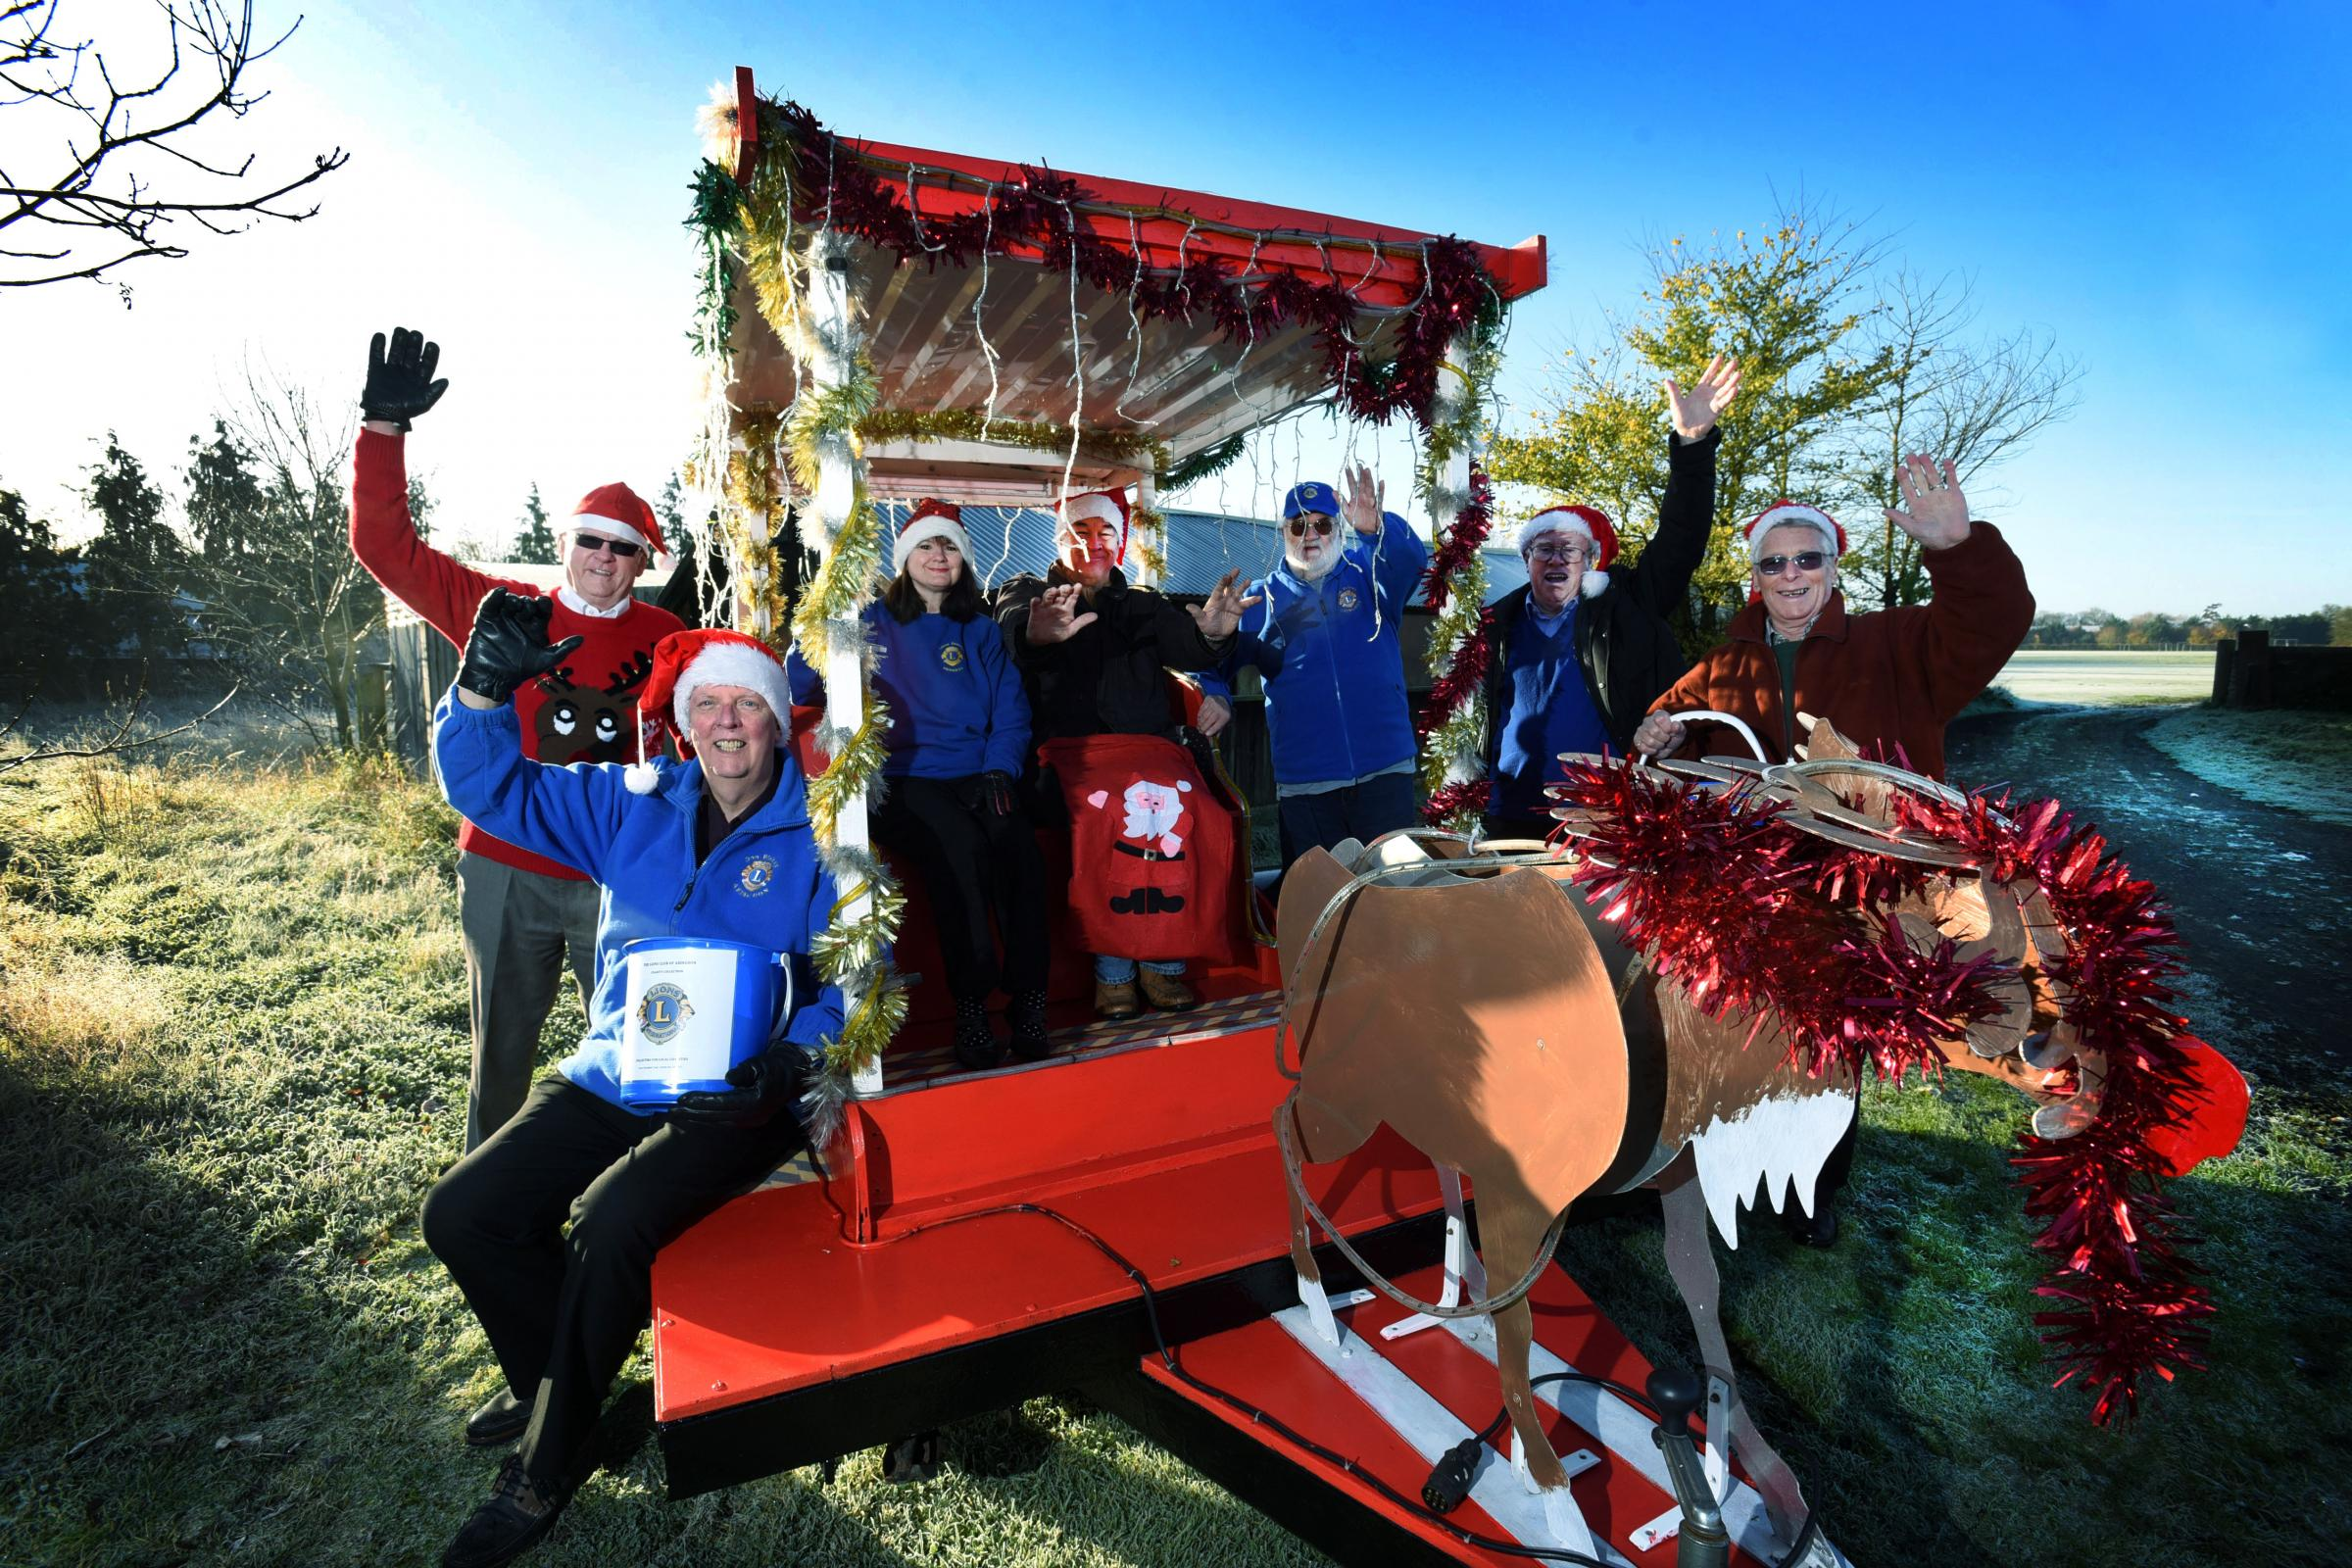 Club members getting ready last year for their annual 10 day tour of the town with Santa and his sleigh. Photograph by Richard Cave.